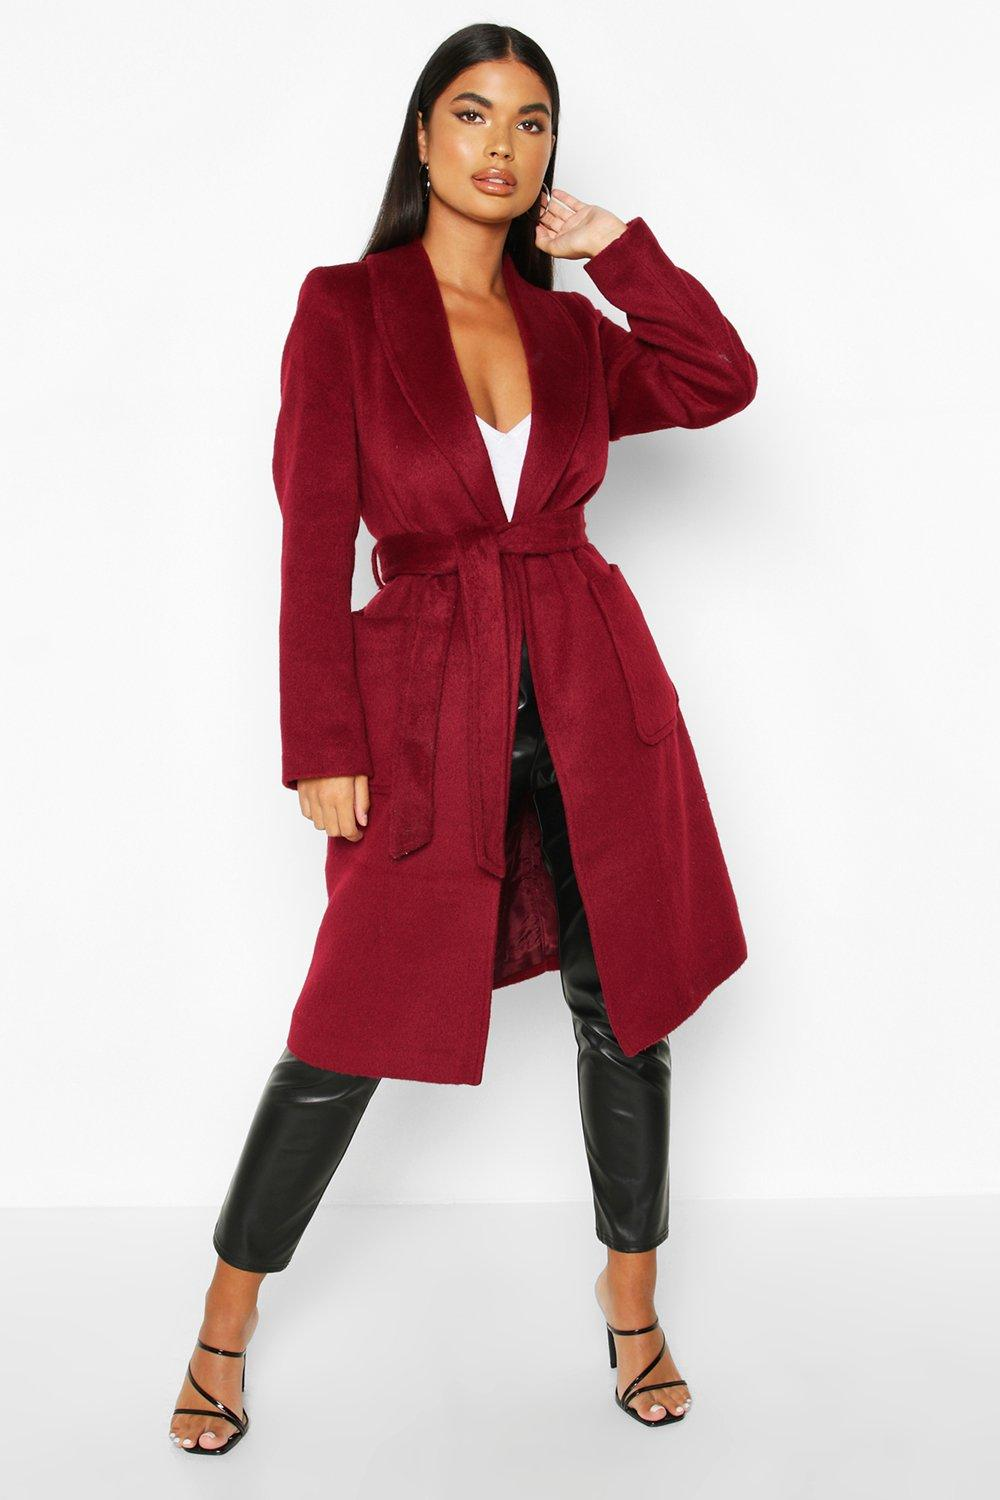 boohoo Womens Petite Wrap Pocket Wool Look Coat - Red - 10, Red